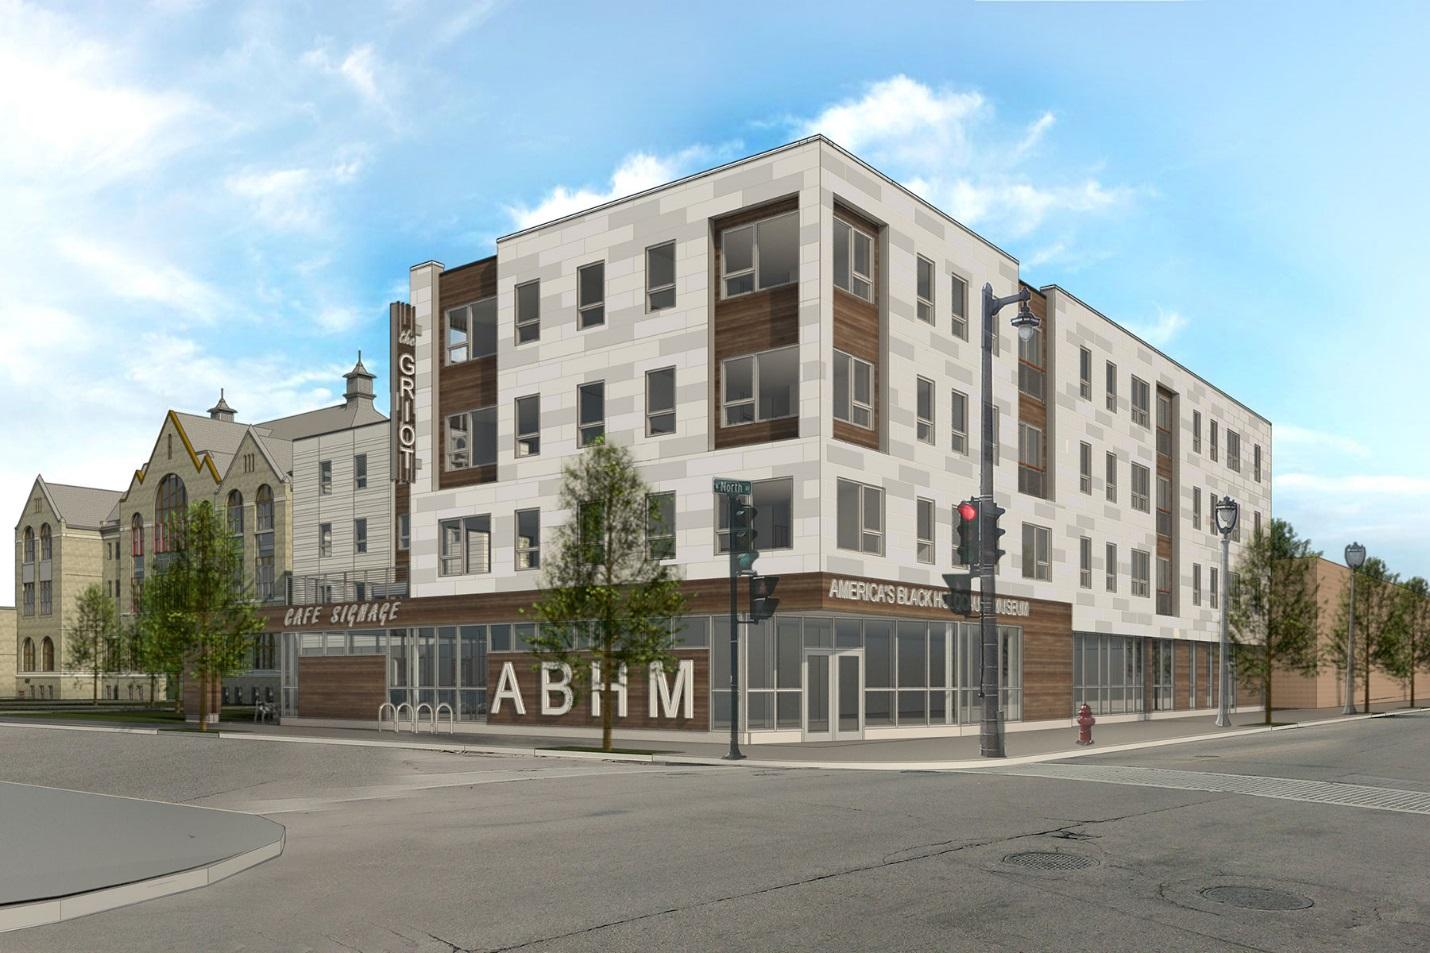 A rendering of The Griot, on the corner of 4th Street and North Avenue. (Photo courtesy of ABHM)